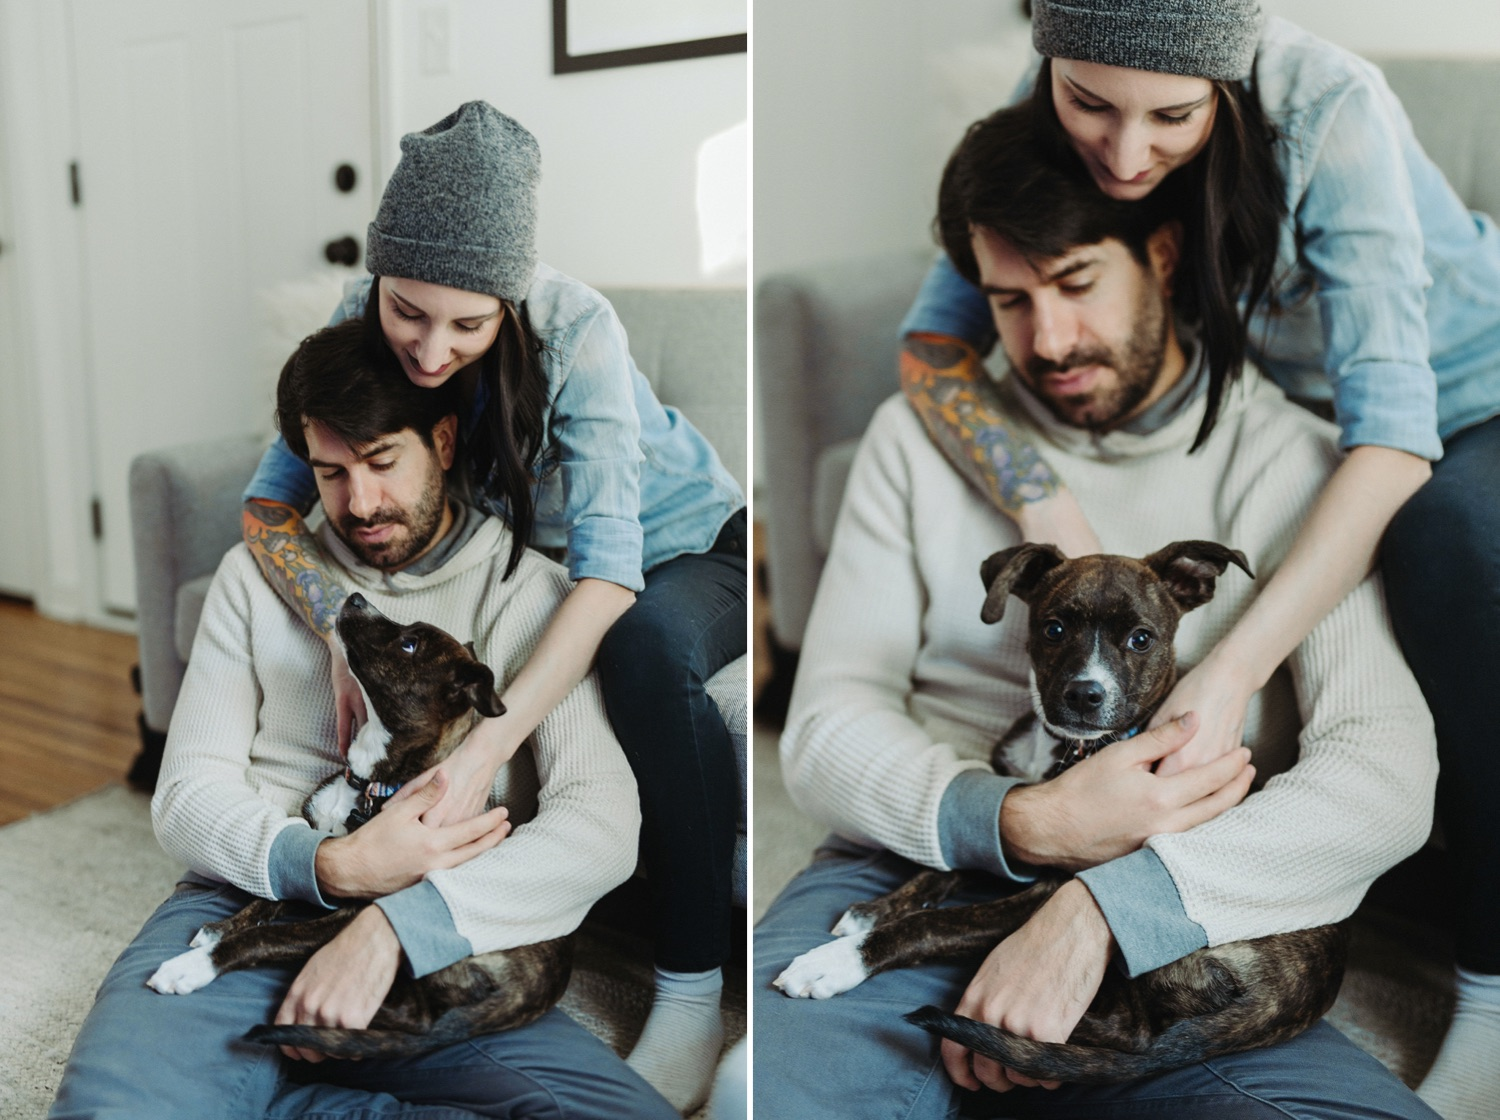 couple cuddling on the couch in home session with dog